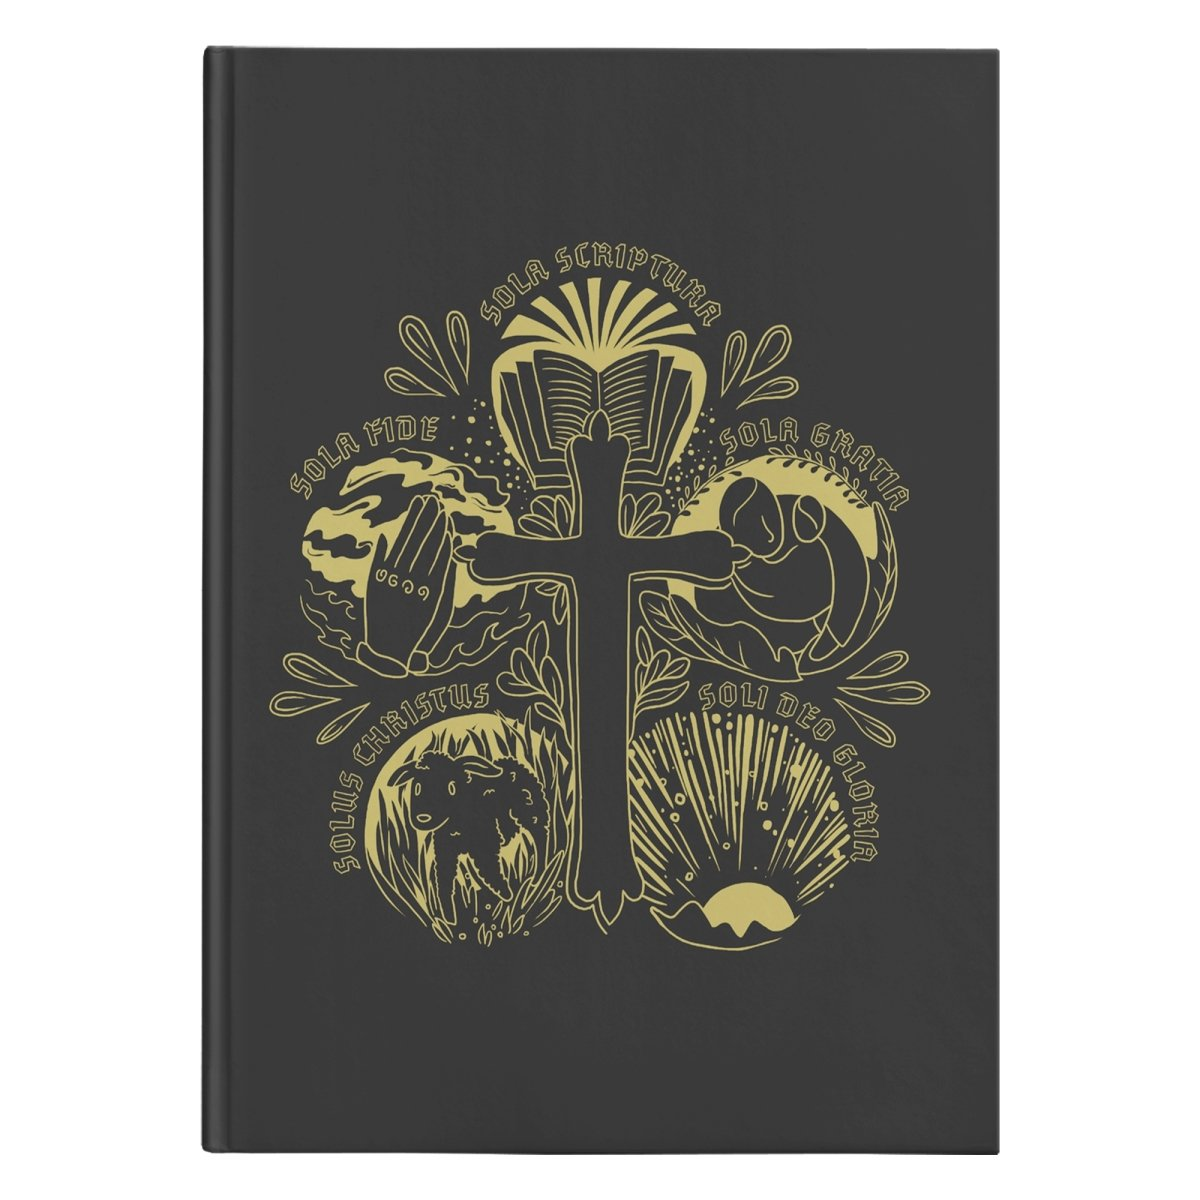 5 Solas (150 page Hardcover Journal) - SDG Clothing